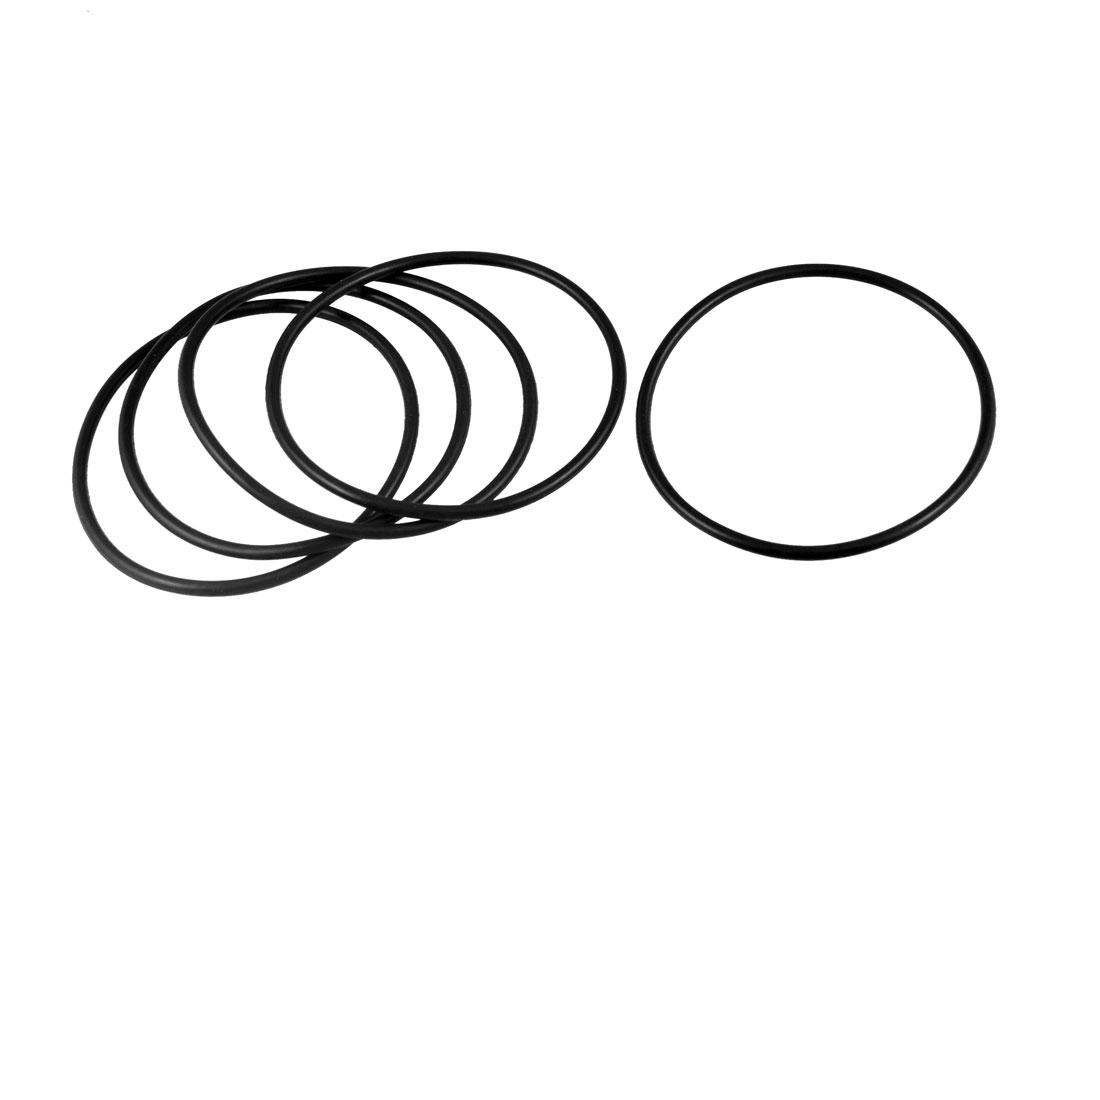 5 Pcs Industrial Rubber O Ring Oil Sealing Gasket 92mm x 3.1mm